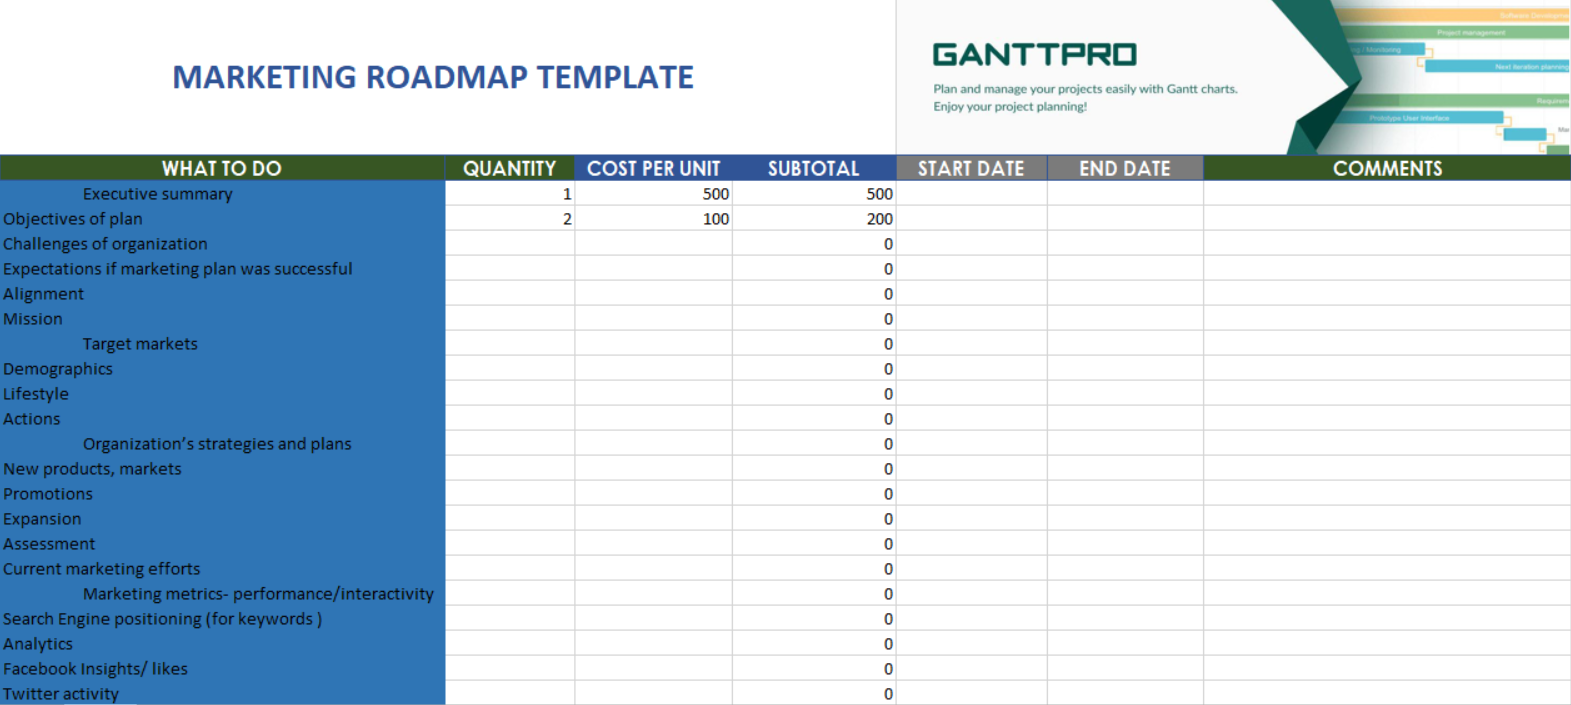 Examples Of Marketing Roadmap Template Excel With Marketing Roadmap Template Excel Letter